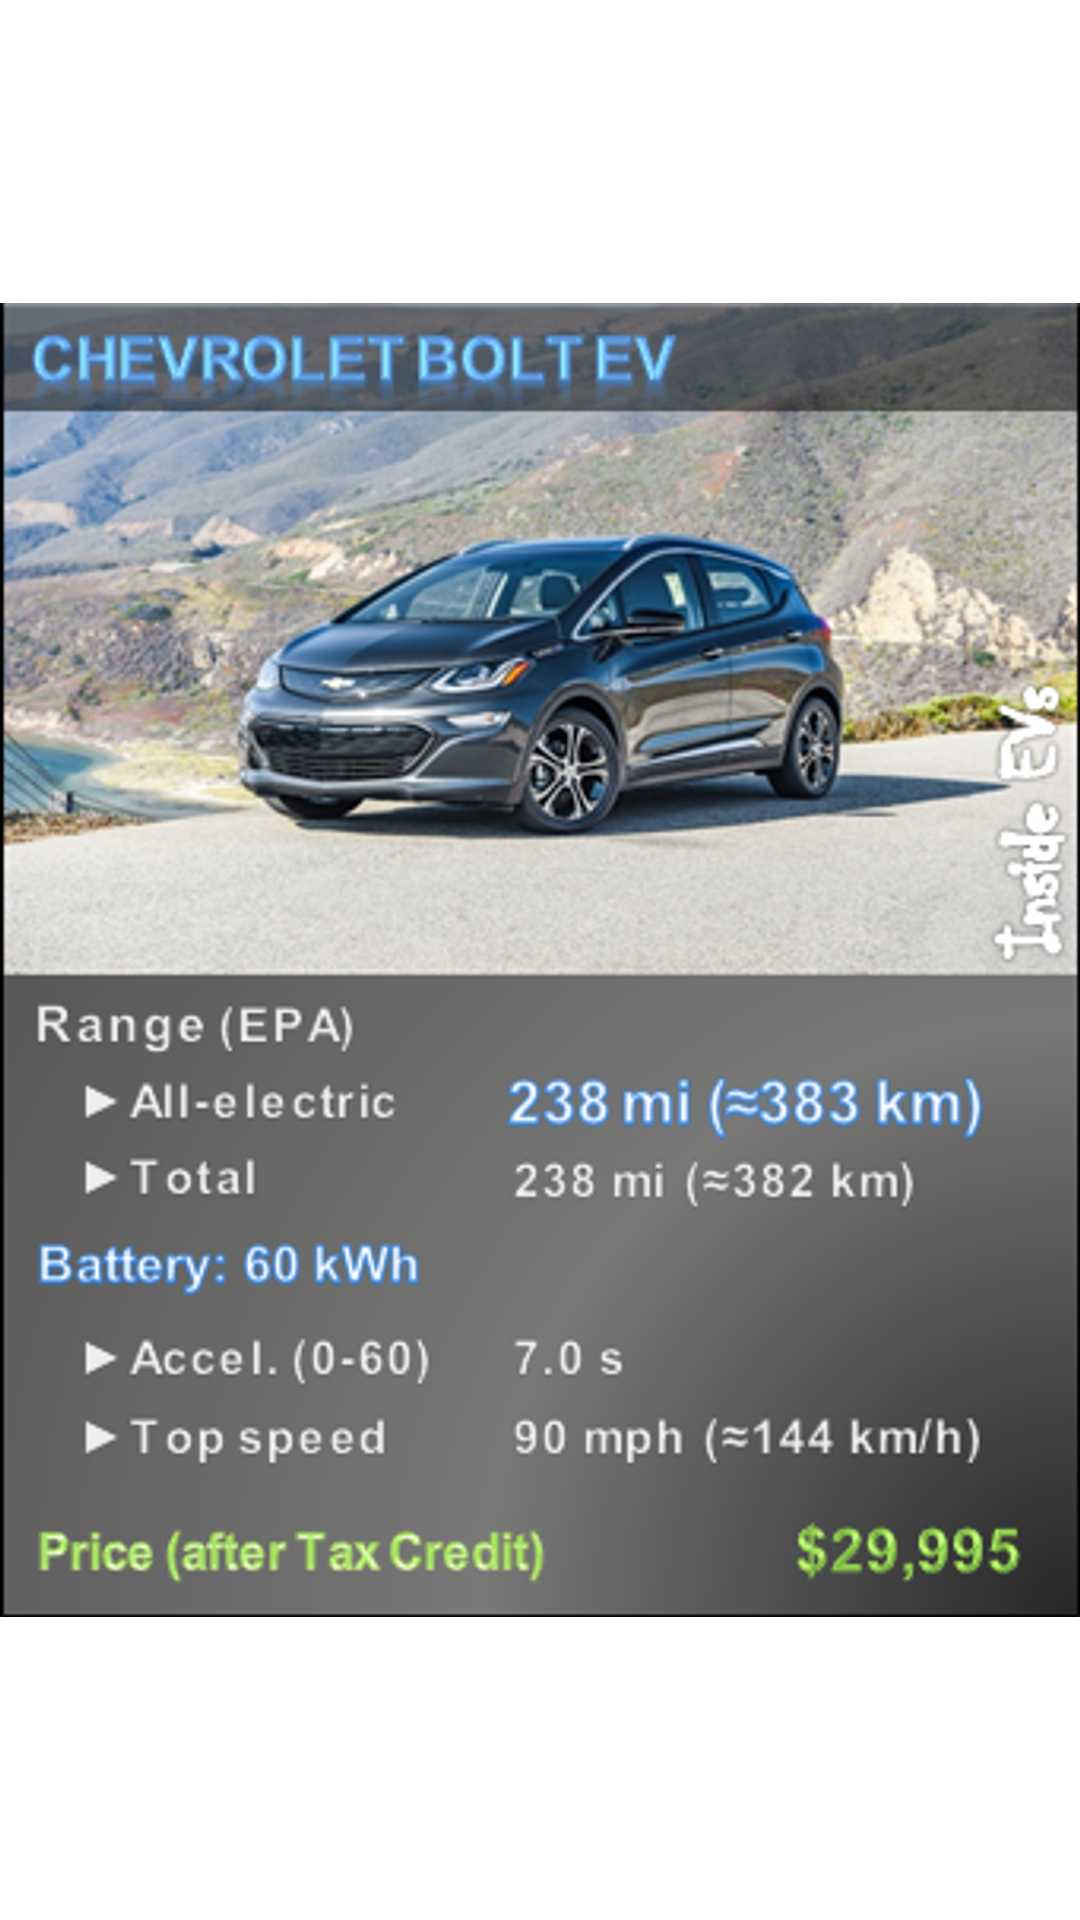 Chevrolet Bolt Becomes First Non Tesla Electric Car To Make Automobile S All Stars List